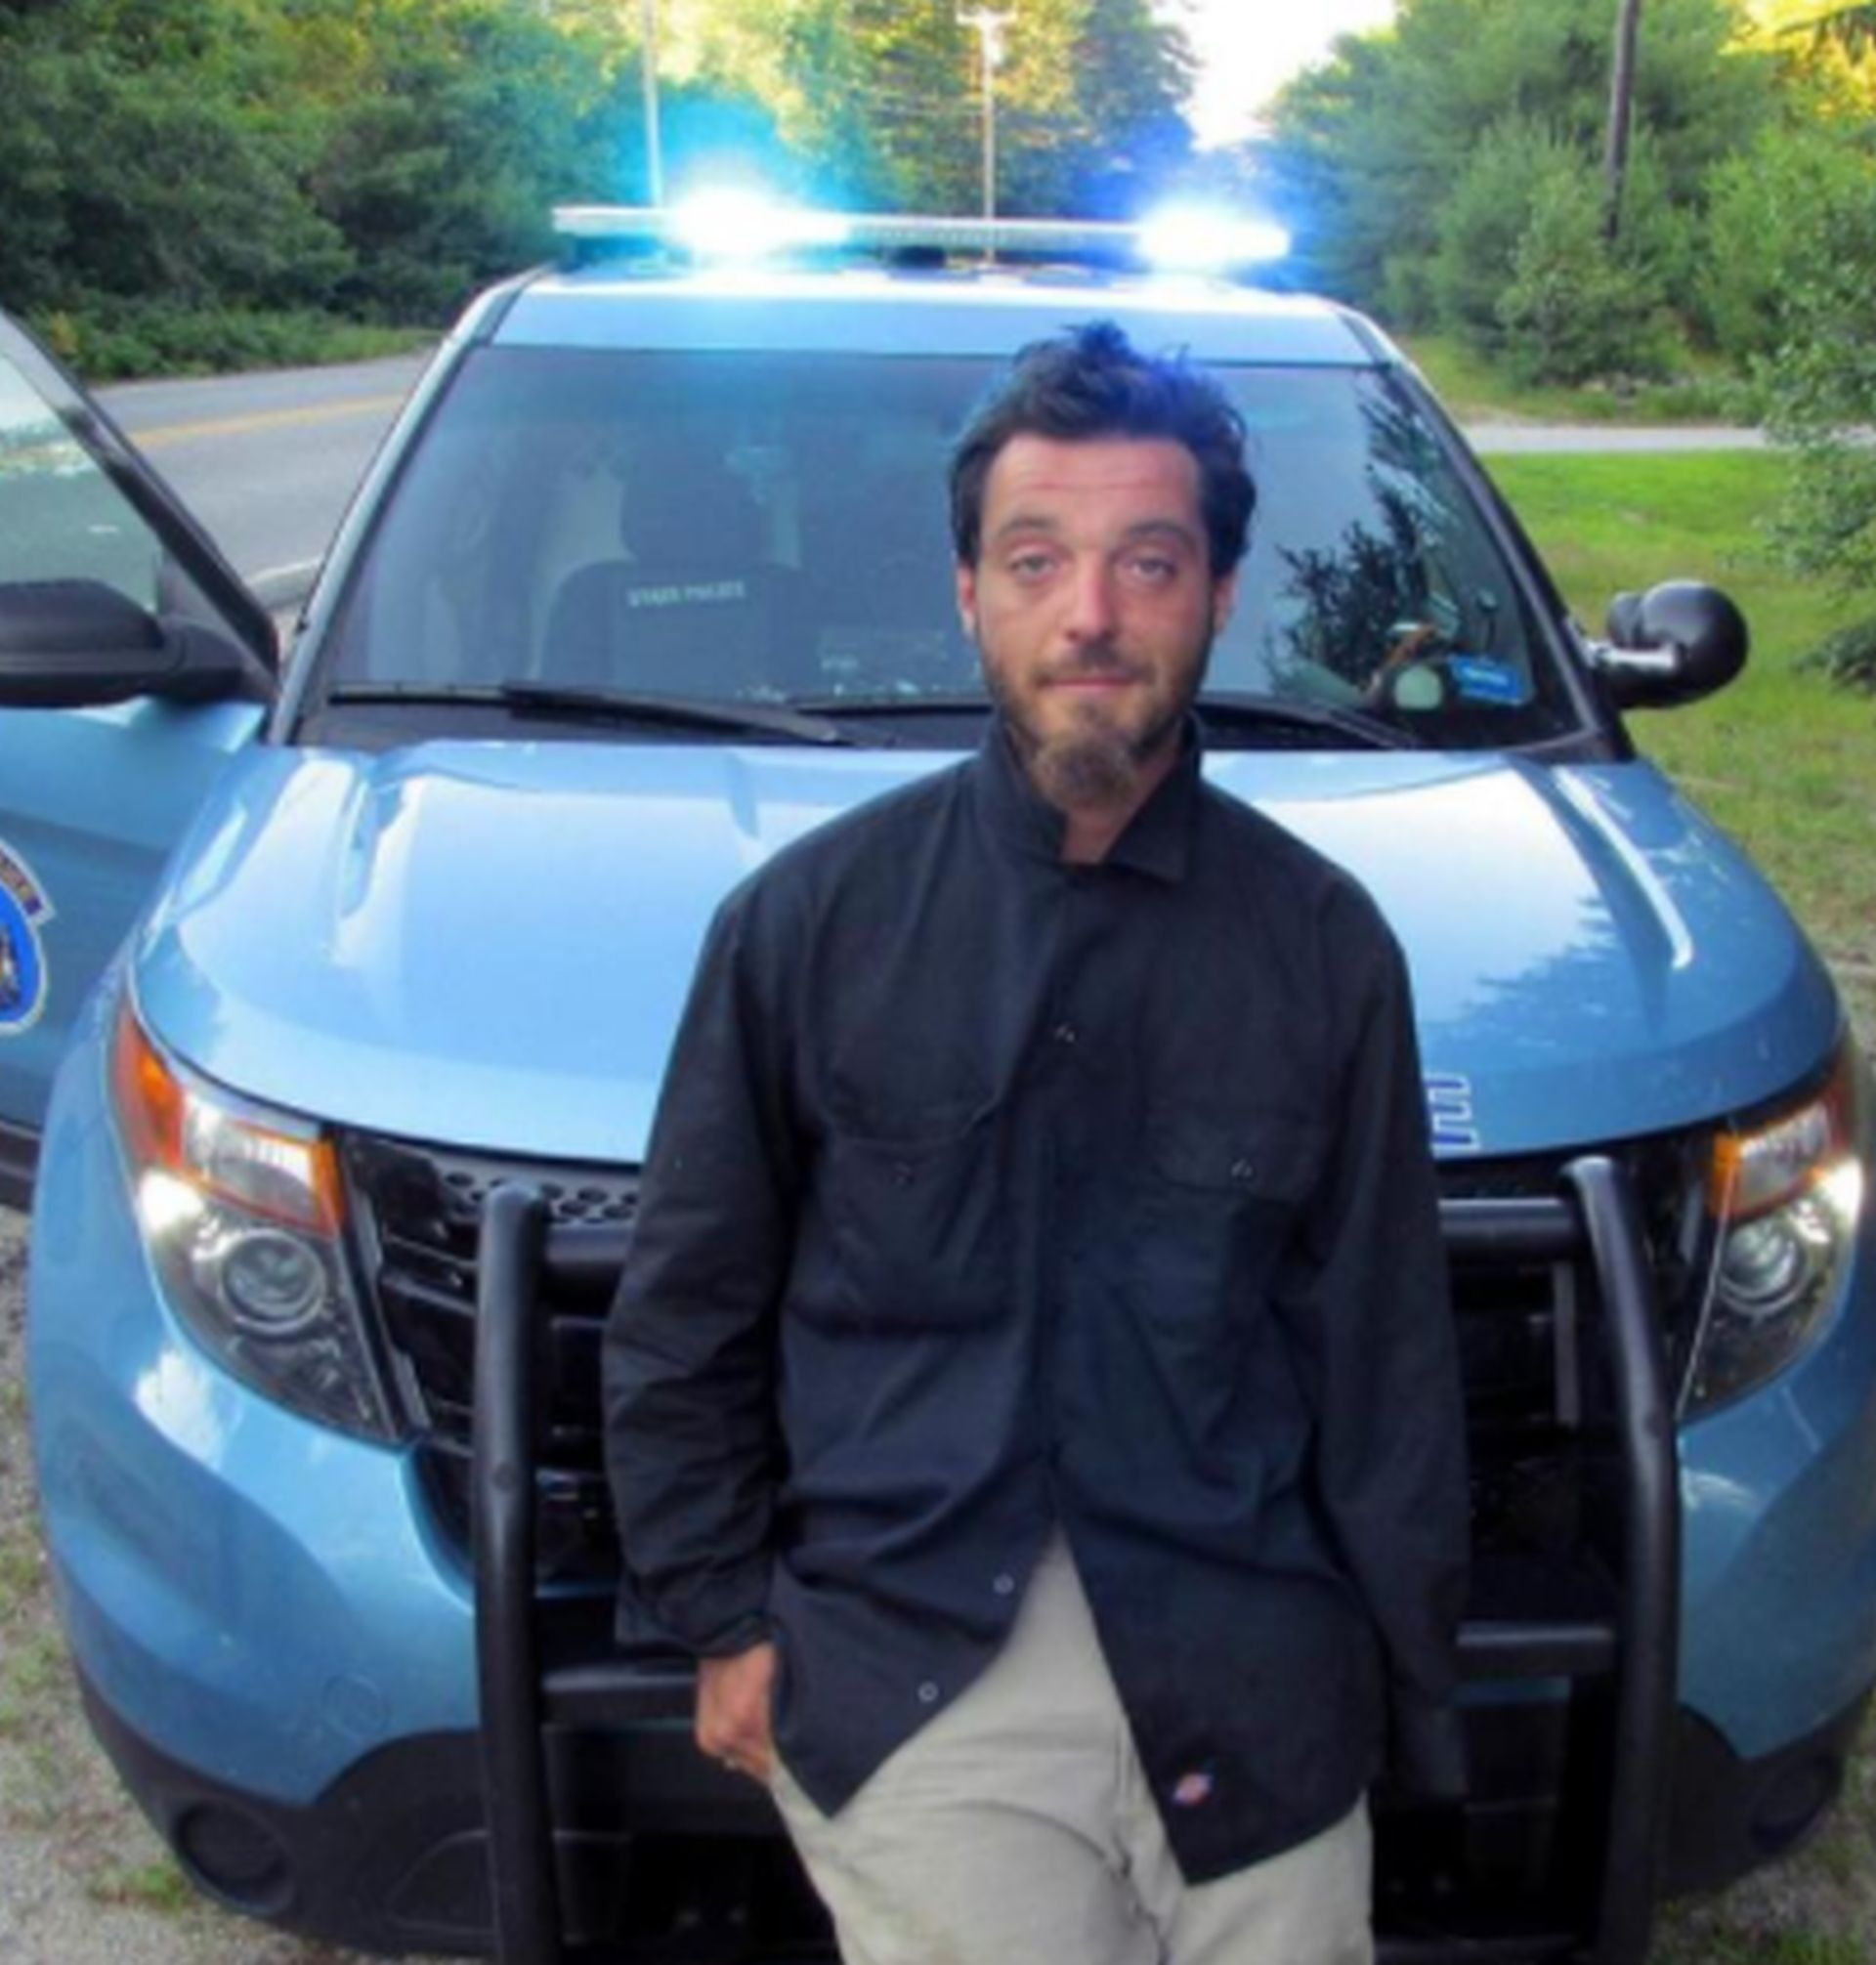 In this file photo released by the Maine State Police shows Corey Berry, of Hollis, Maine, was arrested and charged with criminal threatening after police said he was found strolling down a street wearing a clown mask with a machete taped to his amputated arm. He says it was supposed to be a prank. He pleaded not guilty Wednesday, Aug. 23, to criminal threatening and weapons charges. (Maine State Police via AP, File) THE ASSOCIATED PRESS